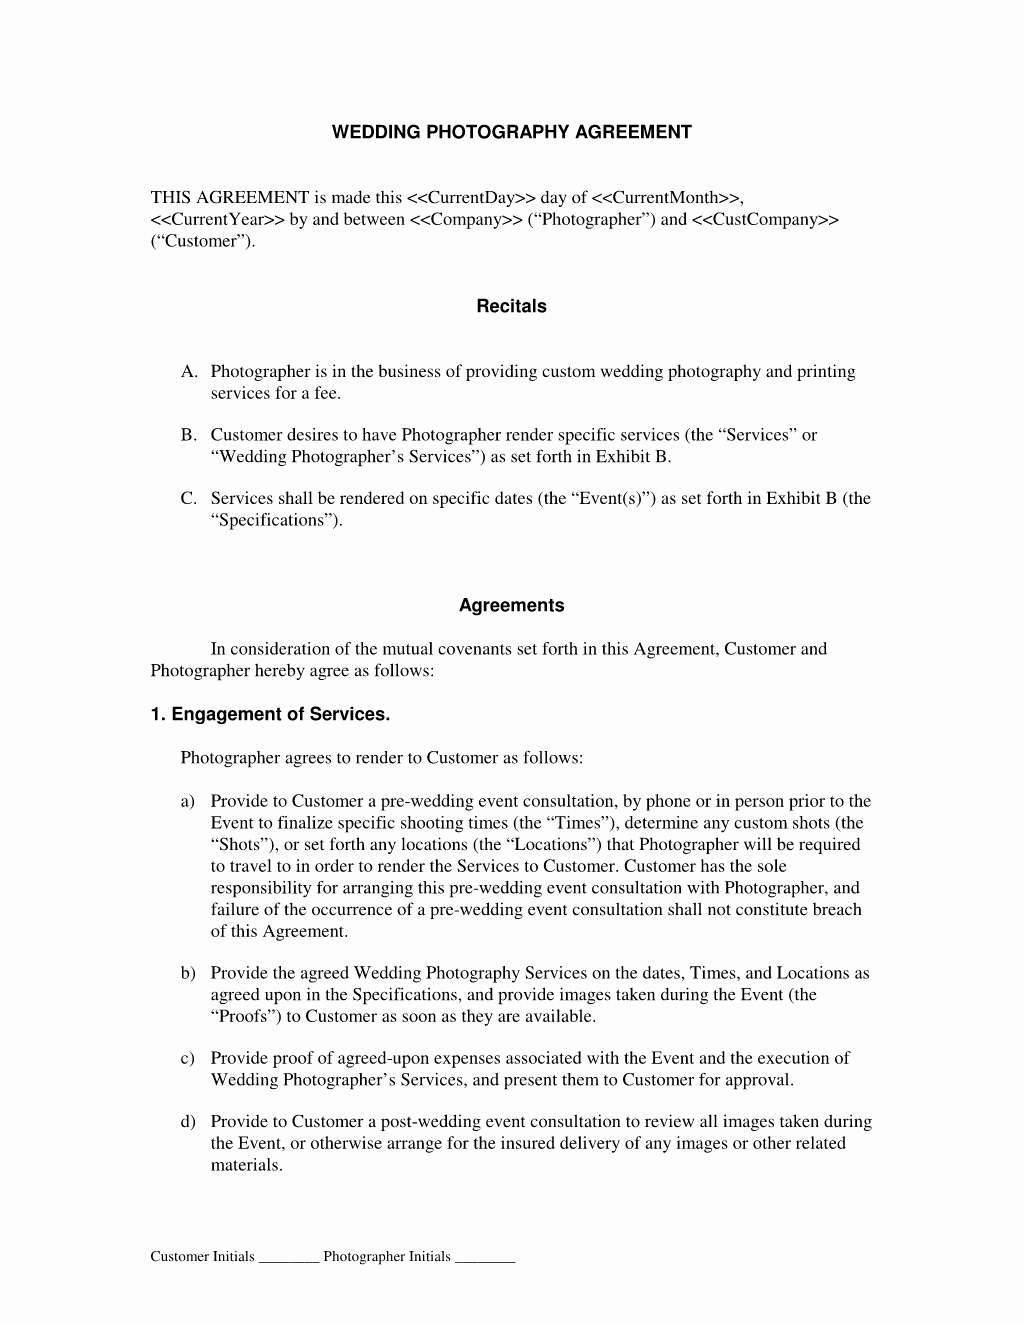 Wedding Pography Contract form